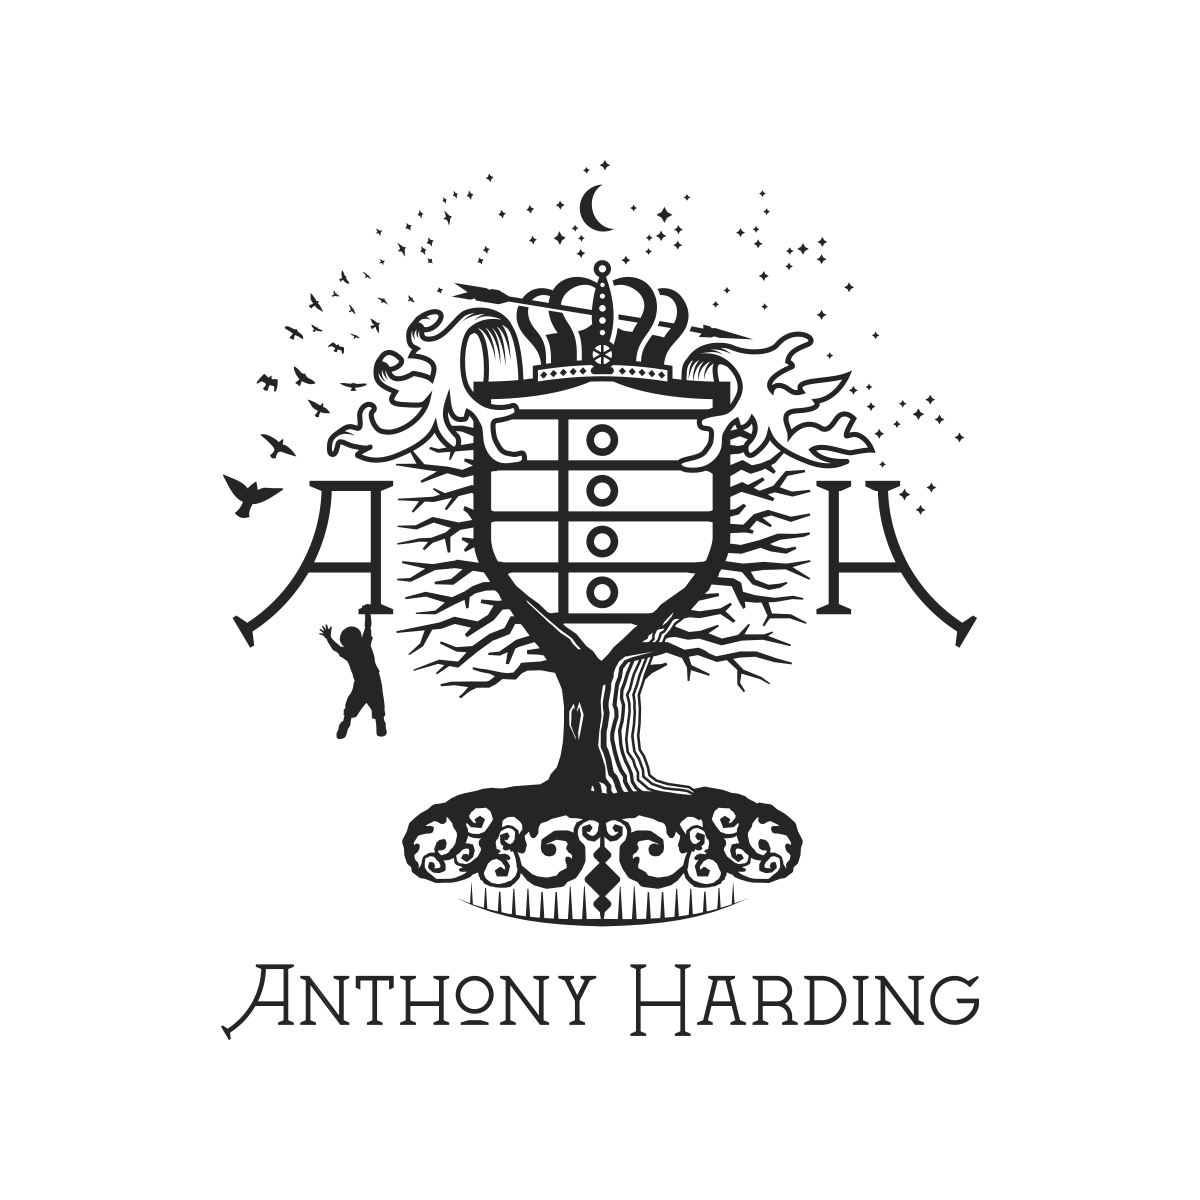 Anthony Harding